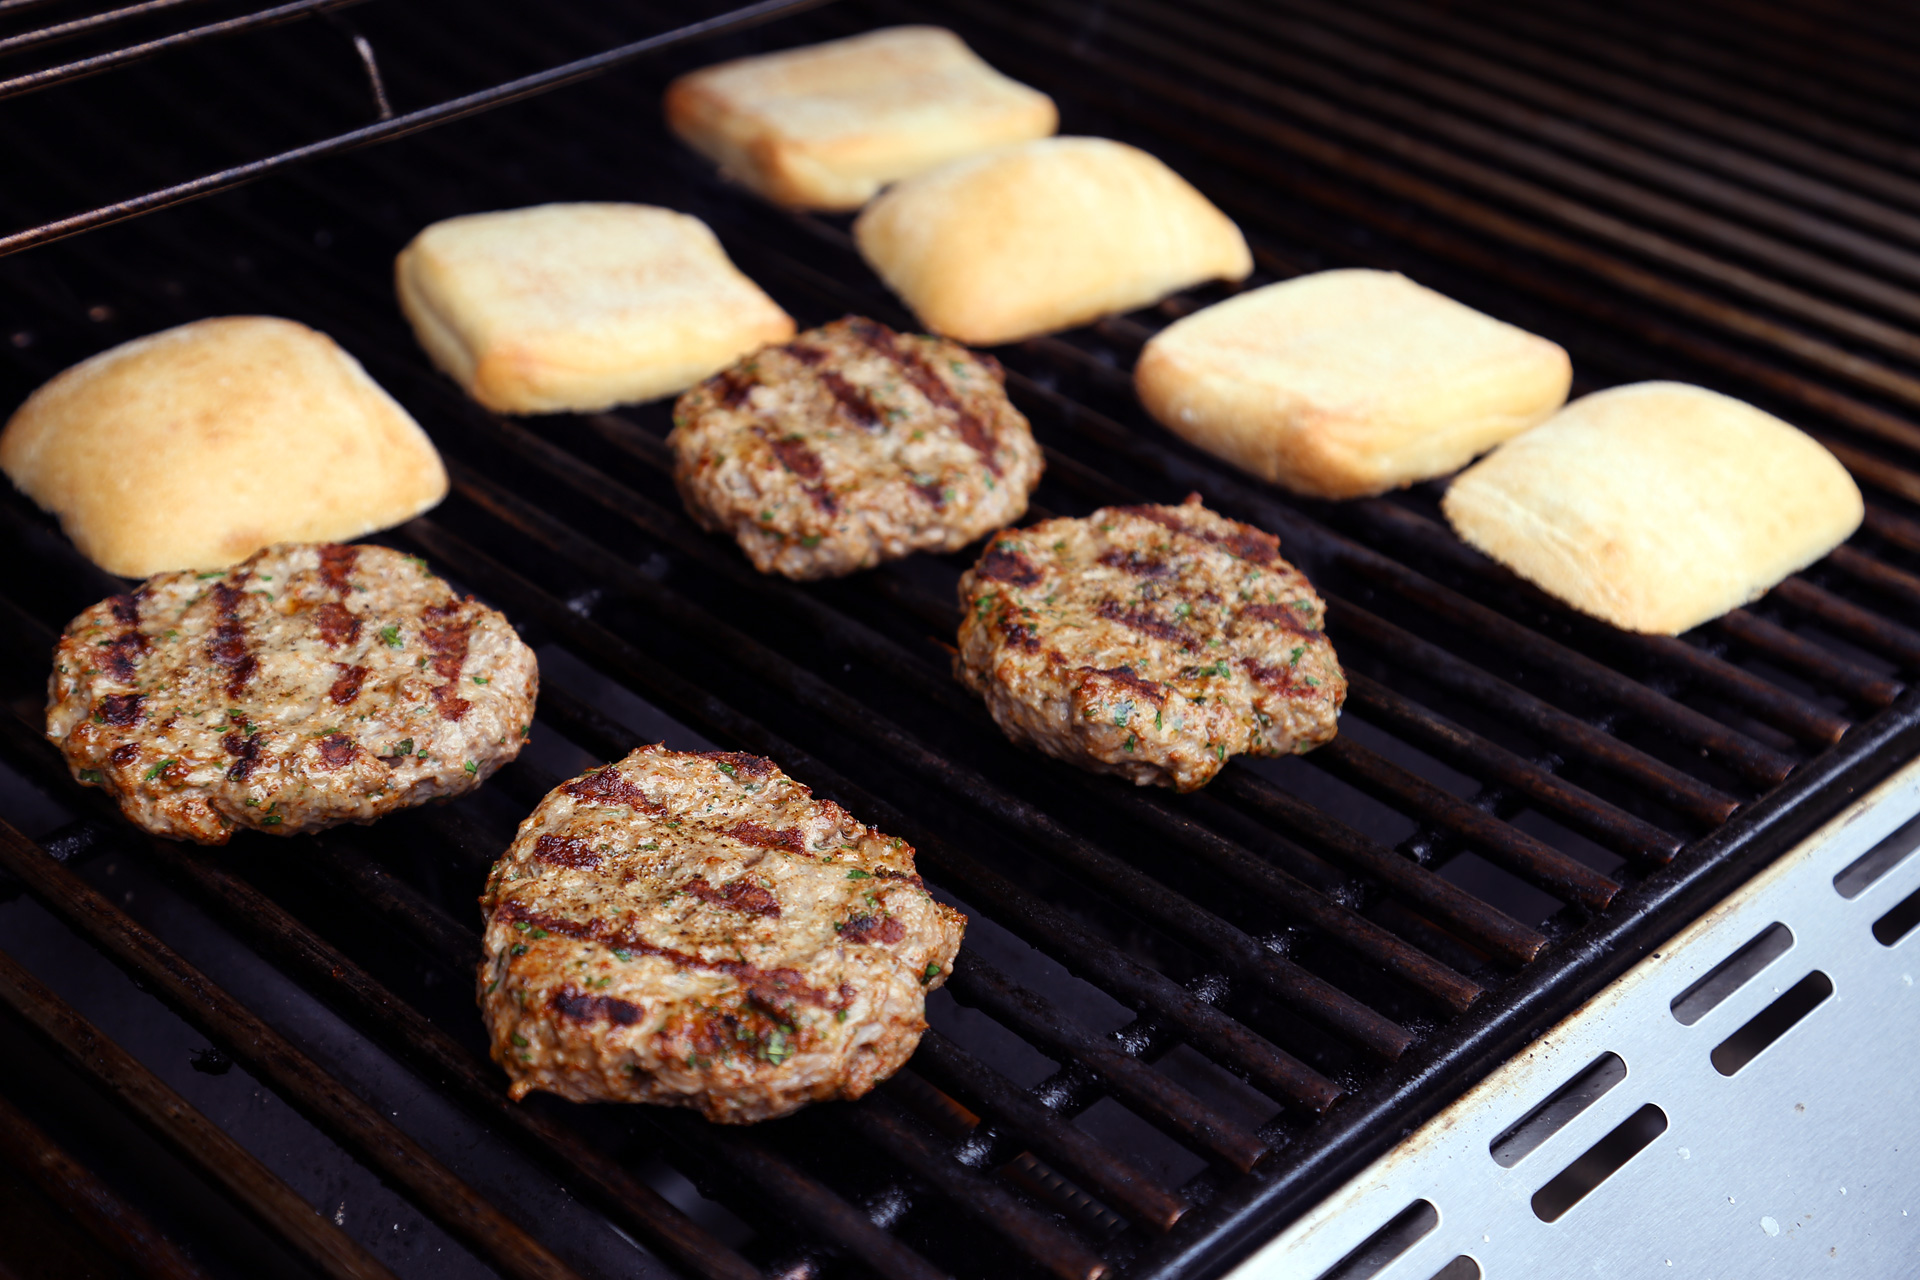 Grill the buns (cut side down) until lightly toasted.